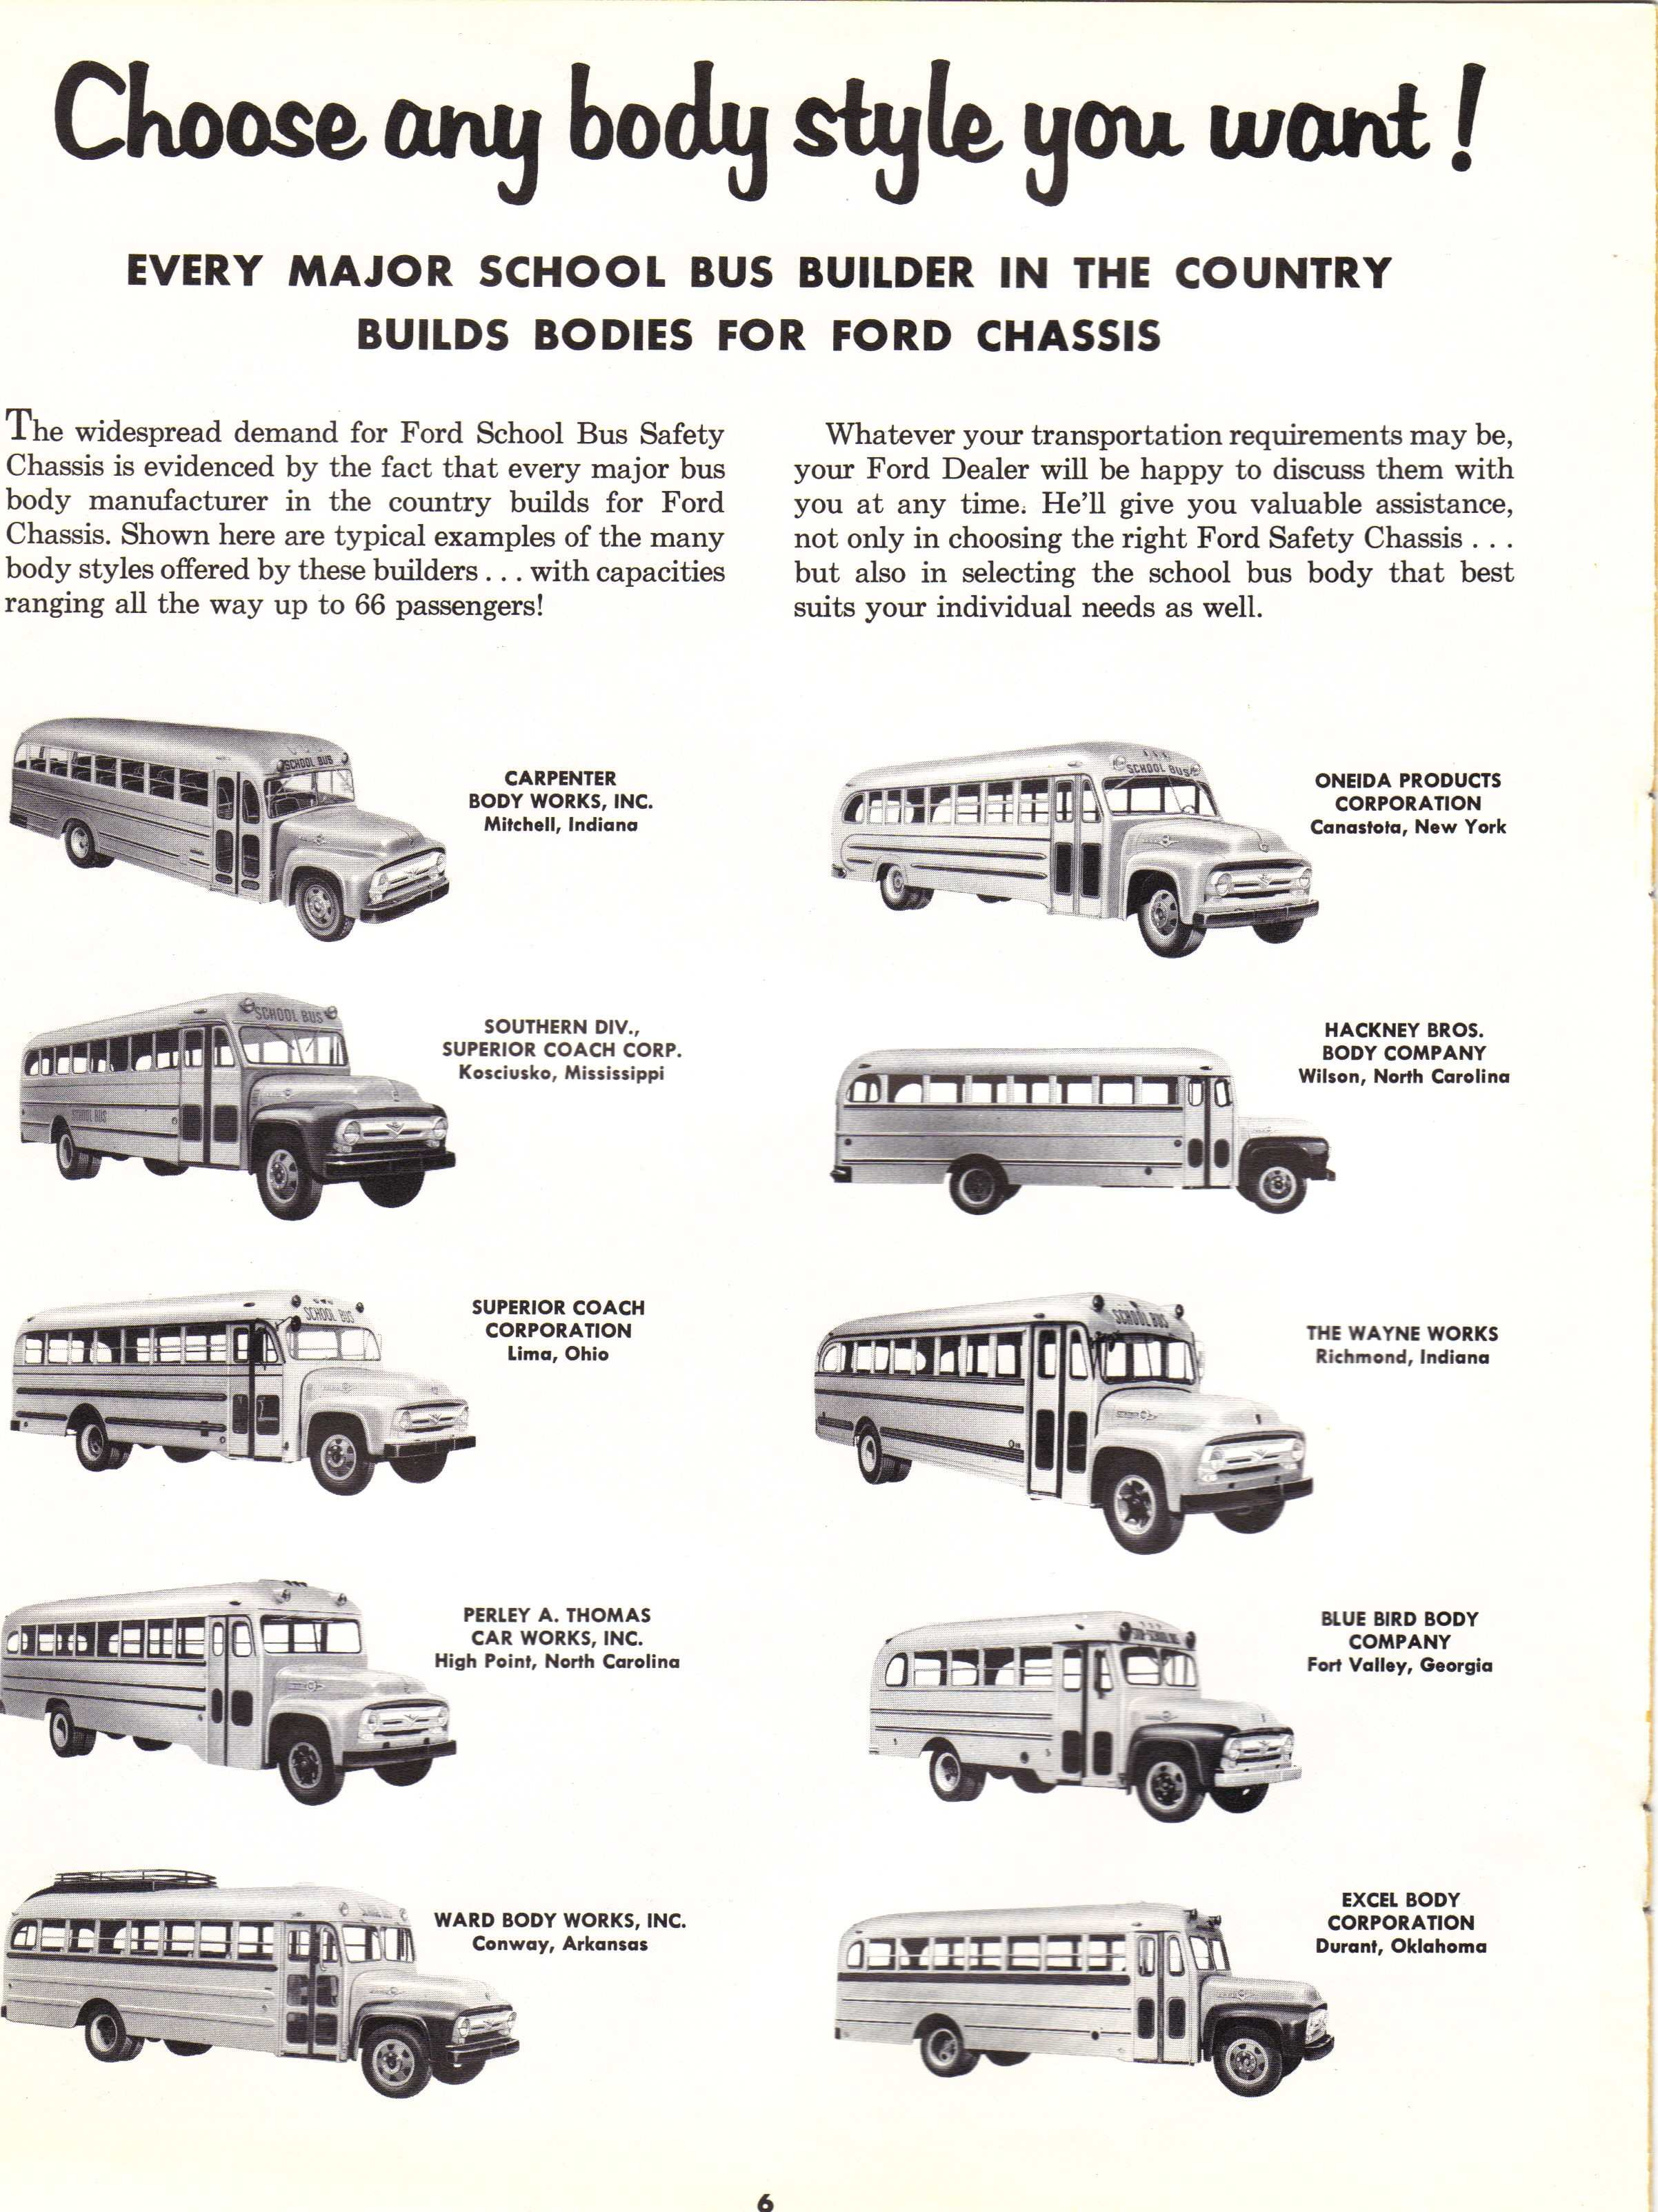 1956 Ford Bus Brochure Pg 6